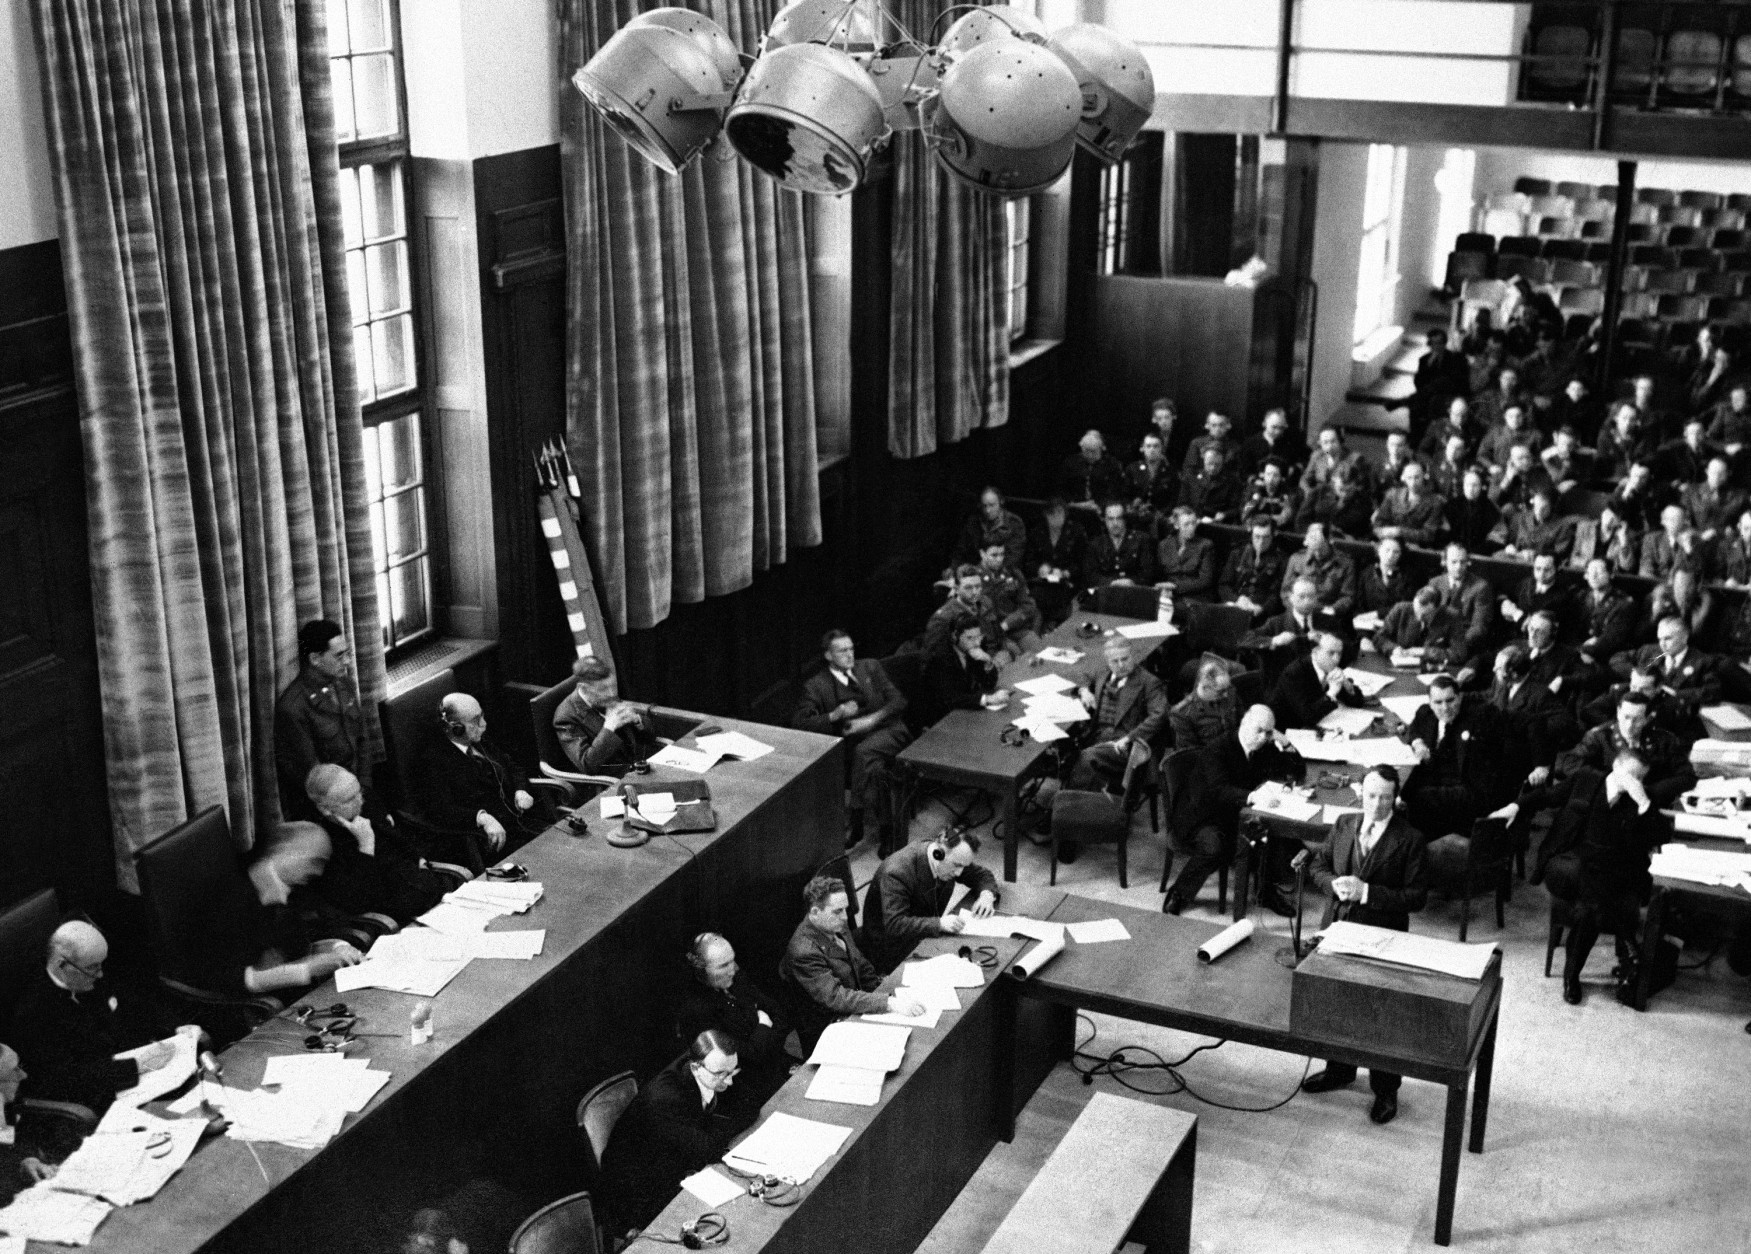 The British Attorney General Sir Hartley Shawcross speaking at the War Crimes Tribunal at Nuremberg, on Nov. 15, 1945, opposed a possible postponement of the Nuremberg trials. A medical report had been read that Gustav Krupp the munitions magnate was dying and was unlikely to face trial. The British Attorney General Sir Hartley Shawcross, bottom right, is seen addressing the court at Nuremberg. (AP Photo)